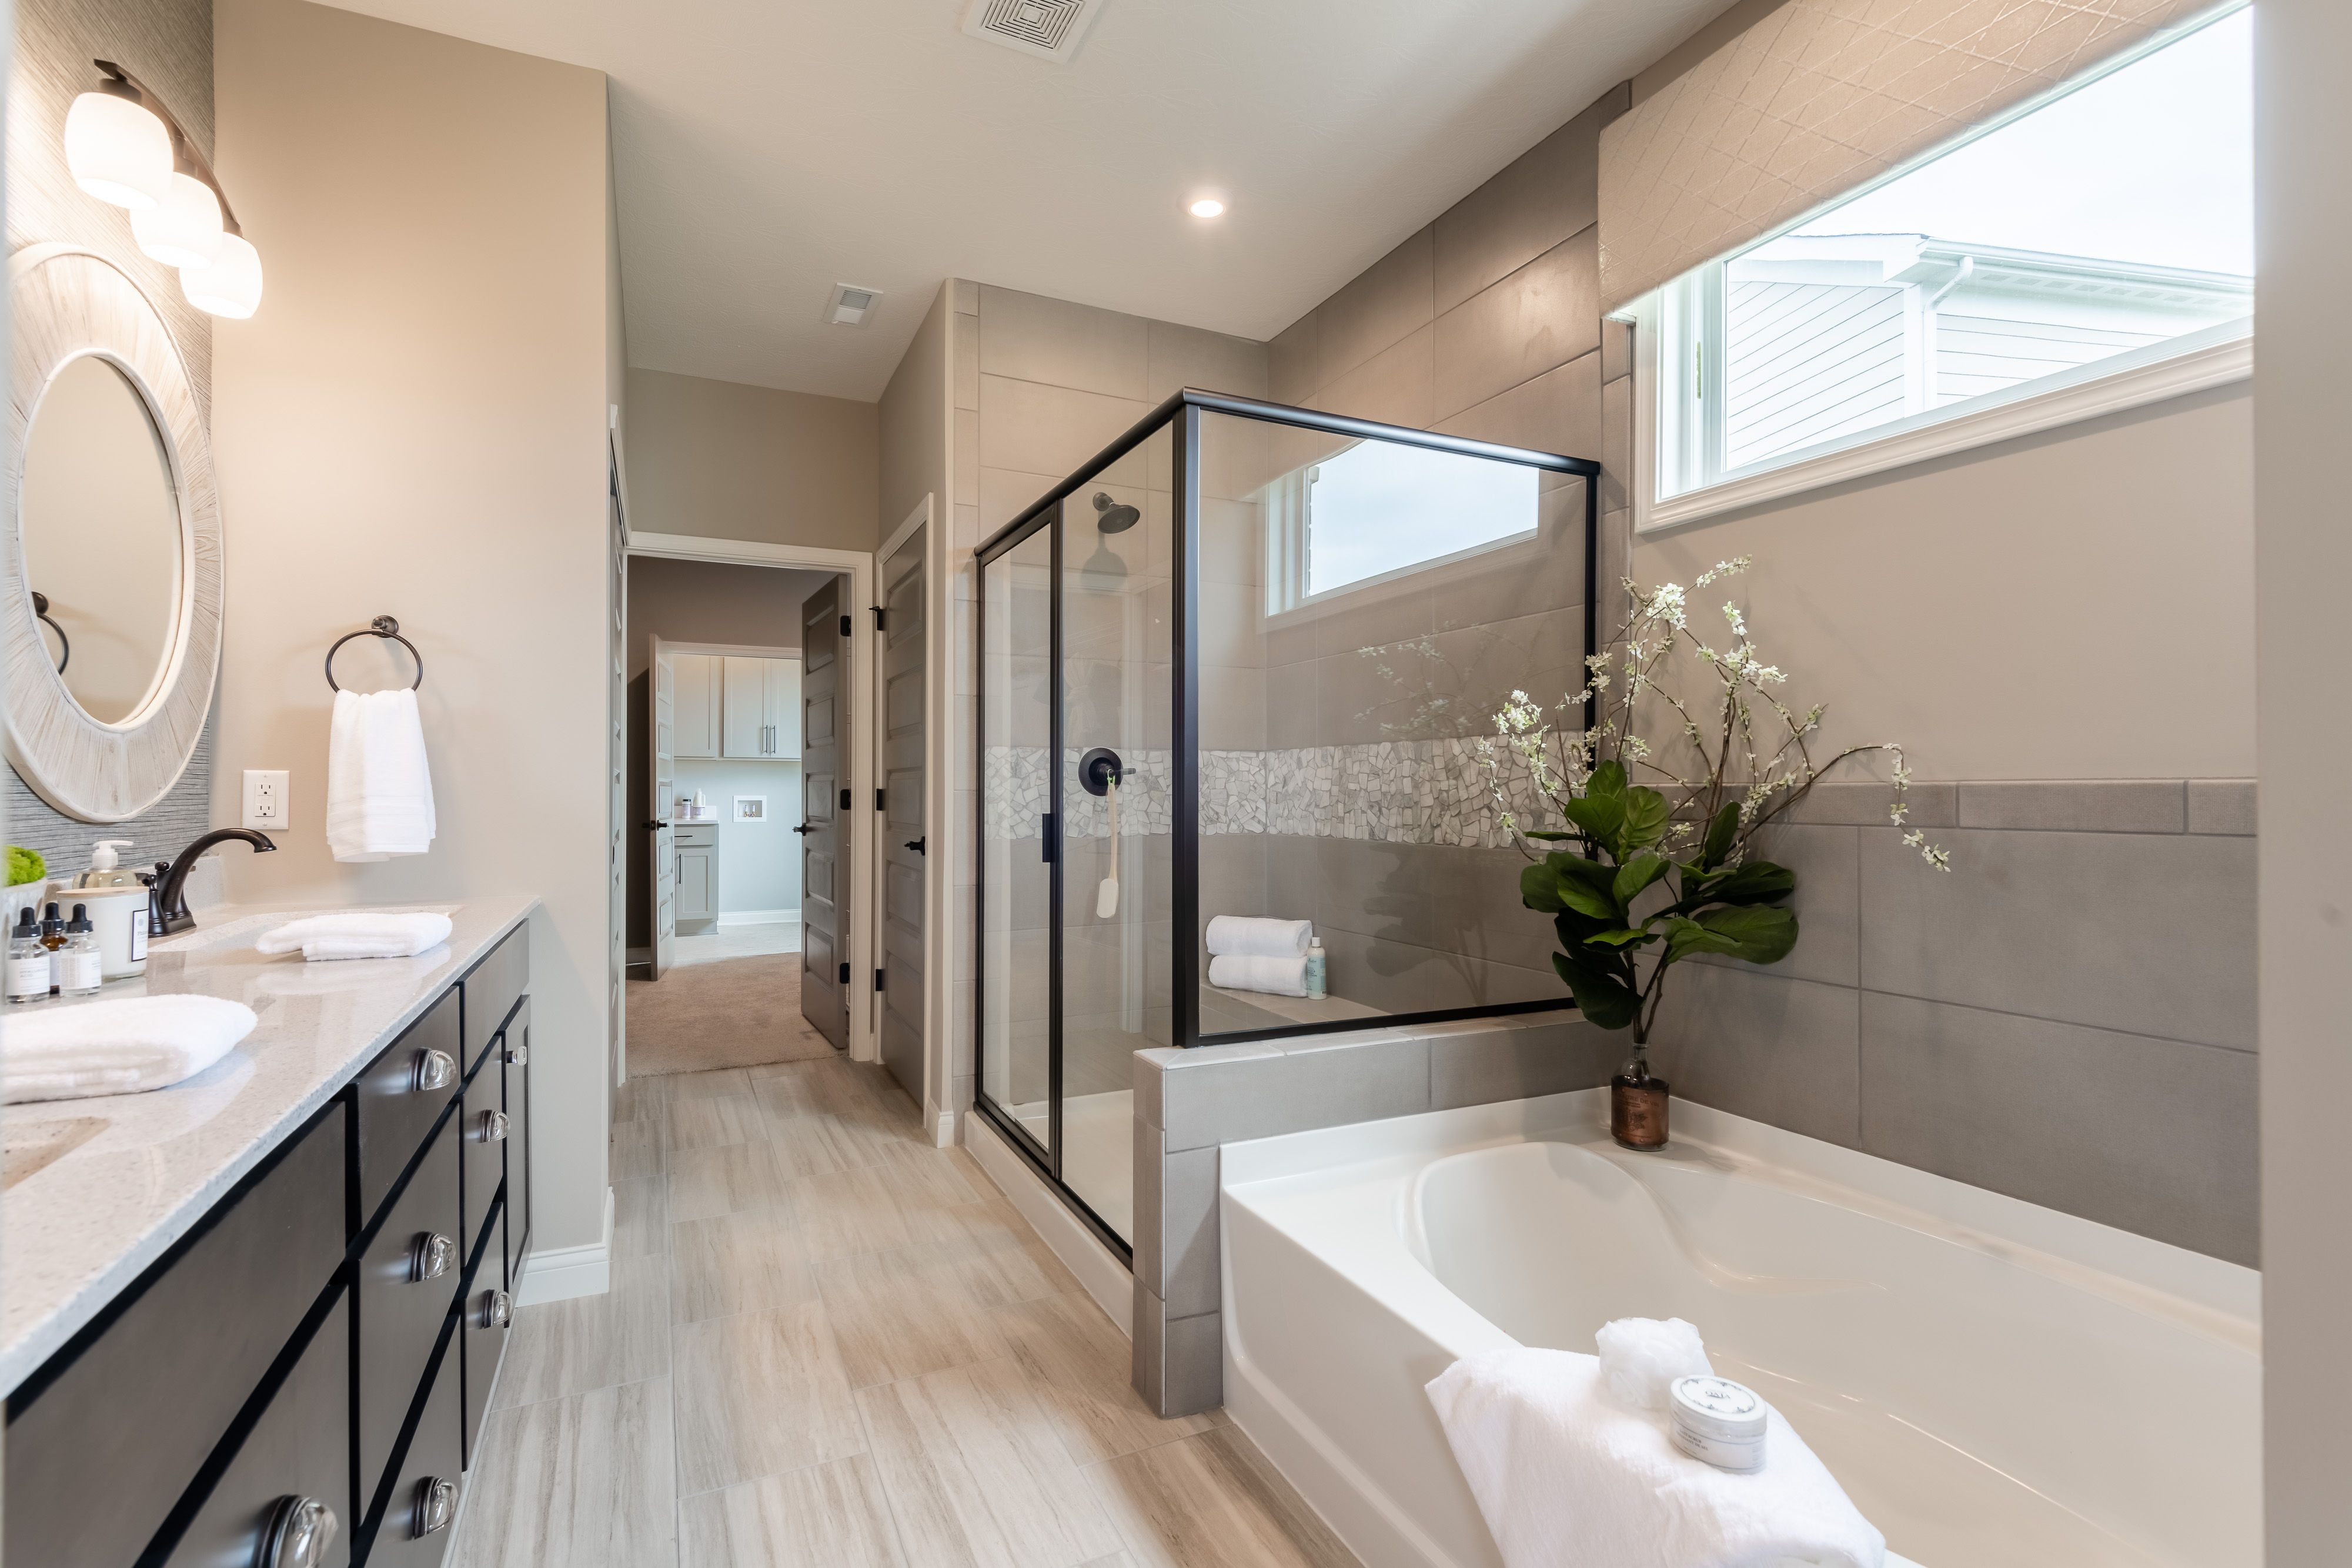 Bathroom featured in the Portland By Fischer Homes  in Columbus, OH